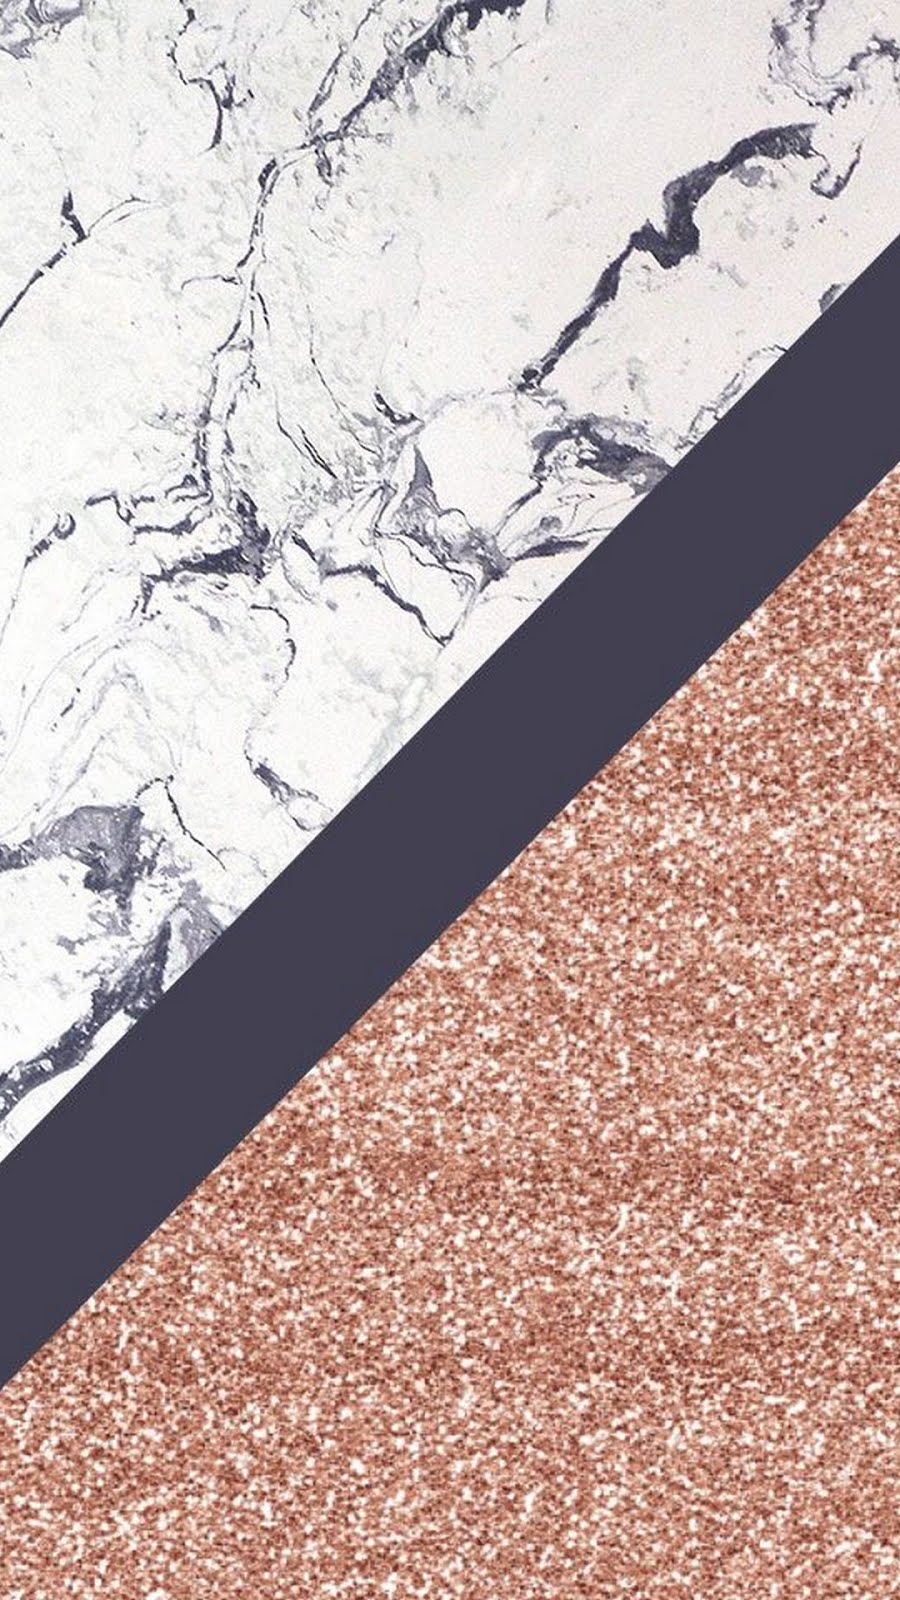 Iphone 7 Wallpaper Rose Gold Marble